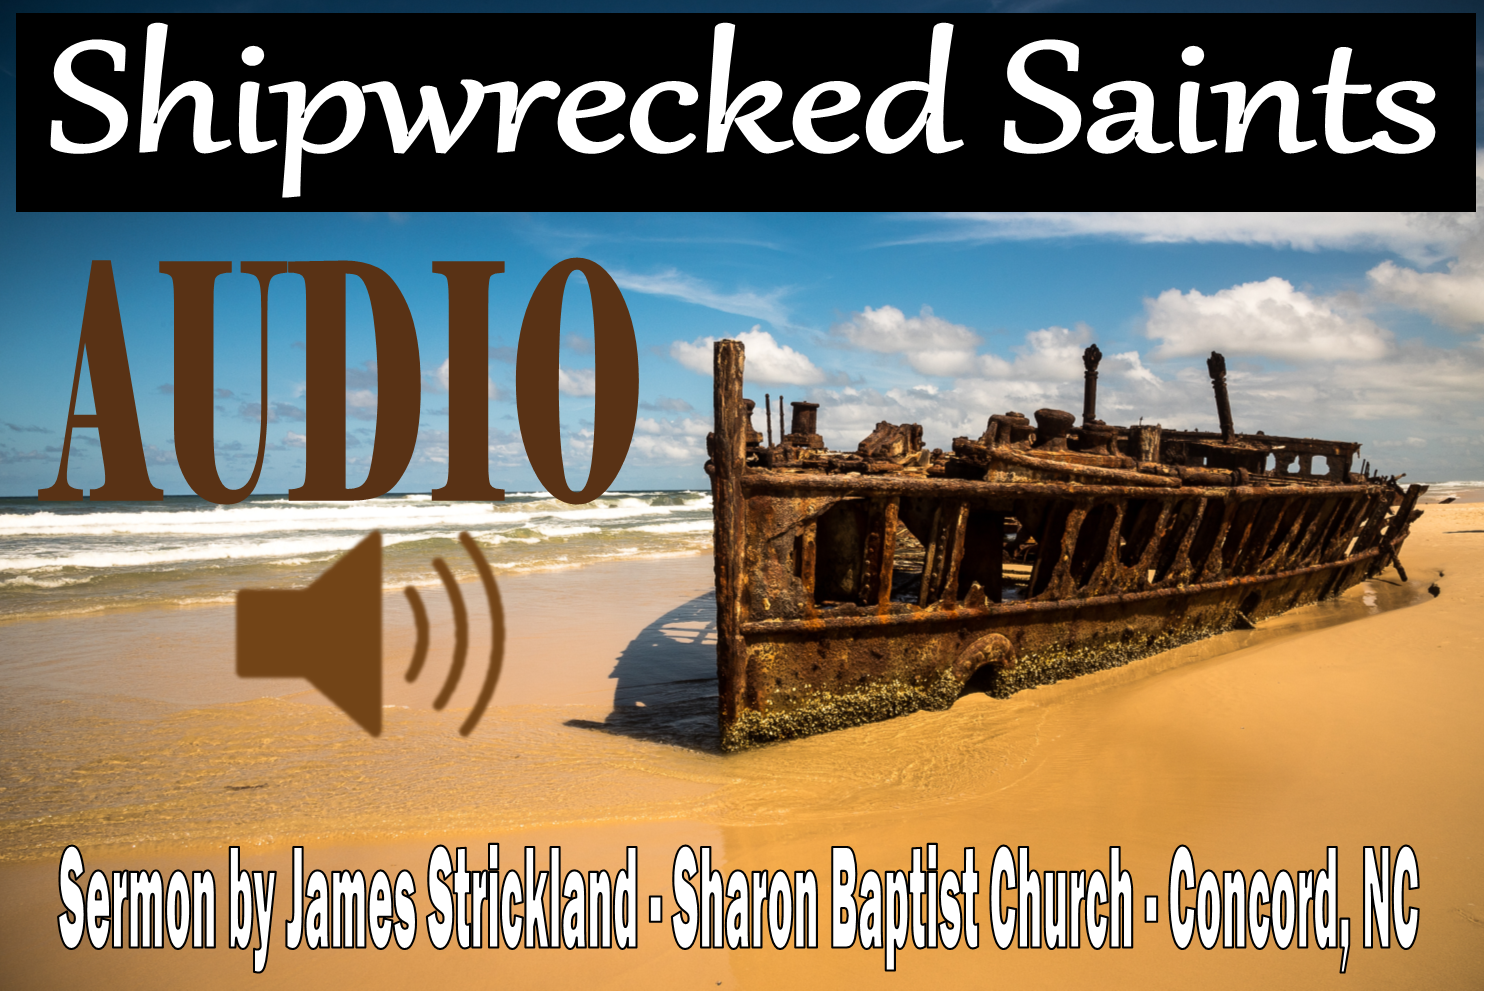 Shipwrecked Saints Sermon